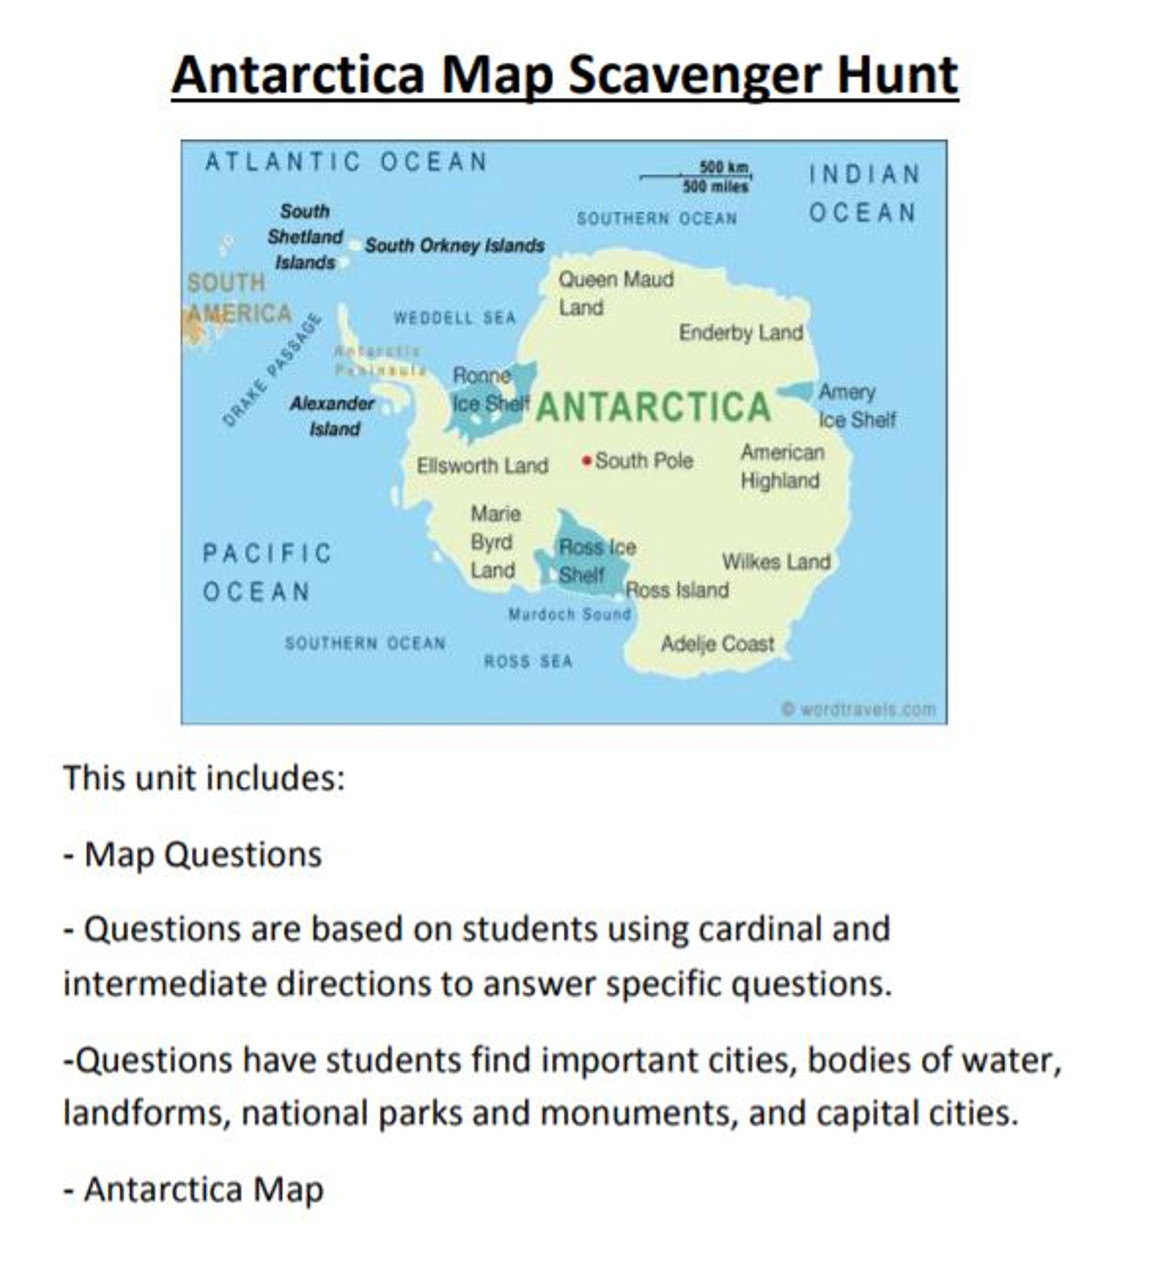 Antarctica map scavenger hunt amped up learning gumiabroncs Gallery